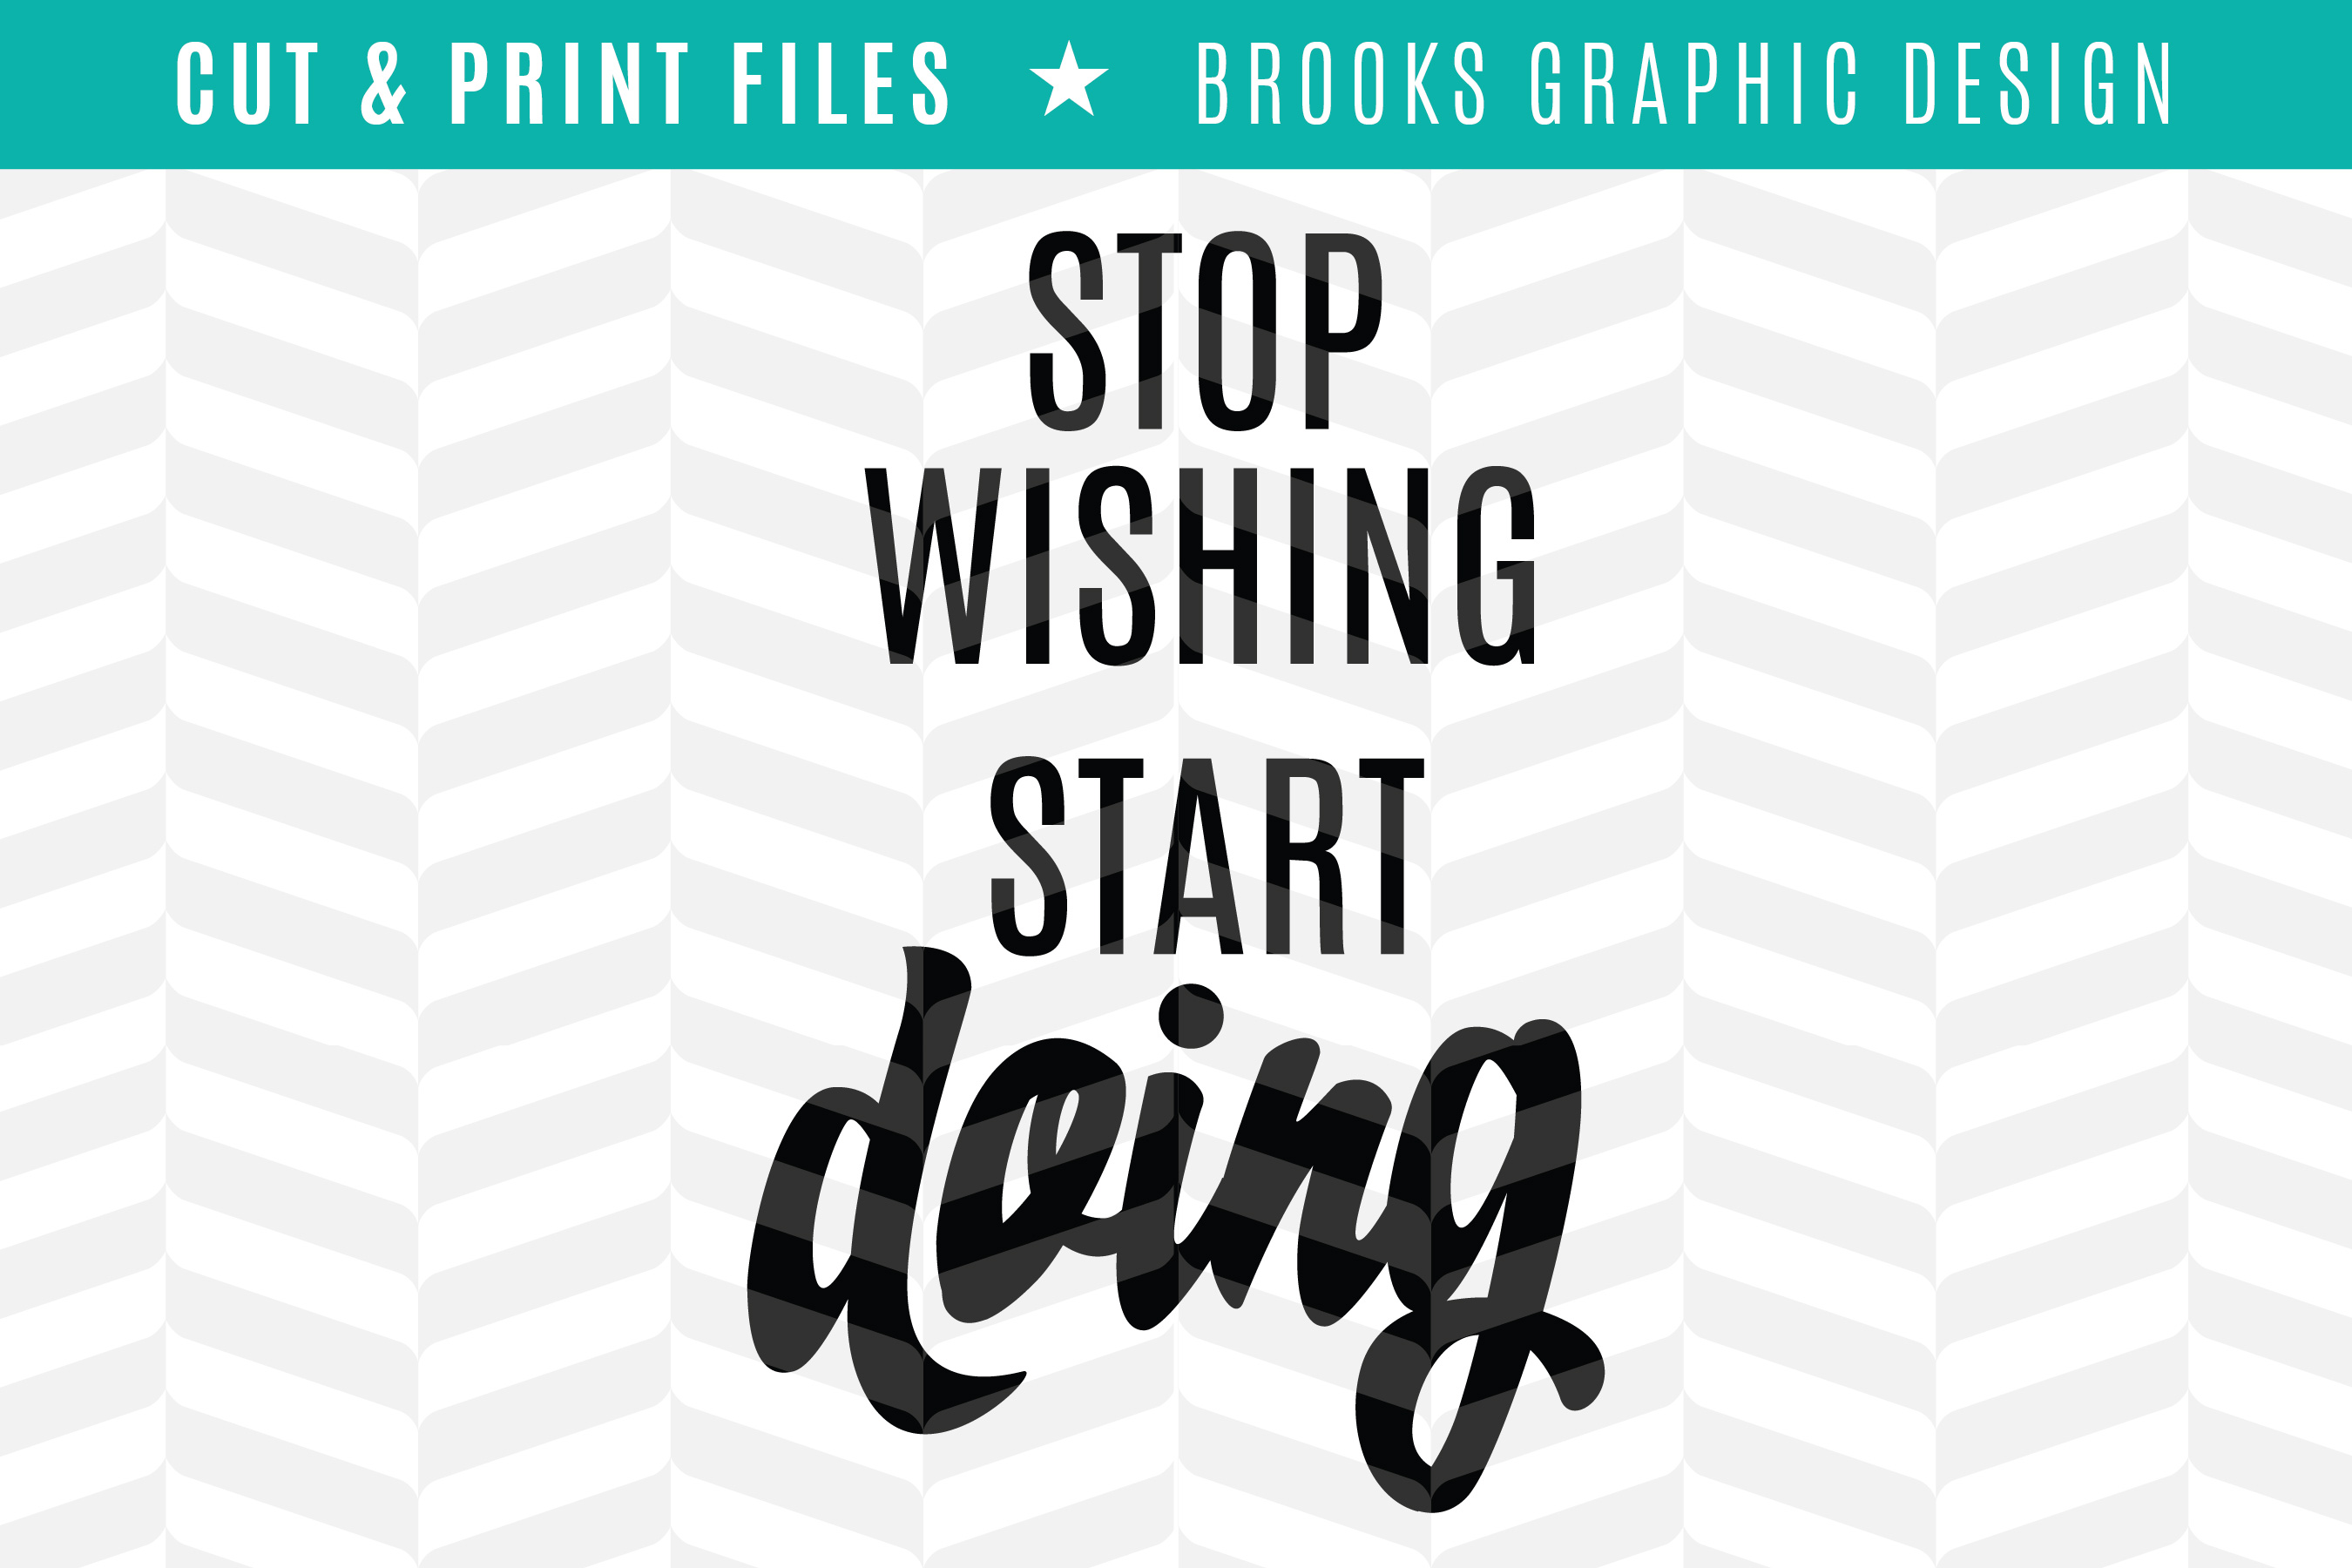 Stop Wishing Start Doing - DXF/SVG/PNG/PDF Cut & Print Files example image 1